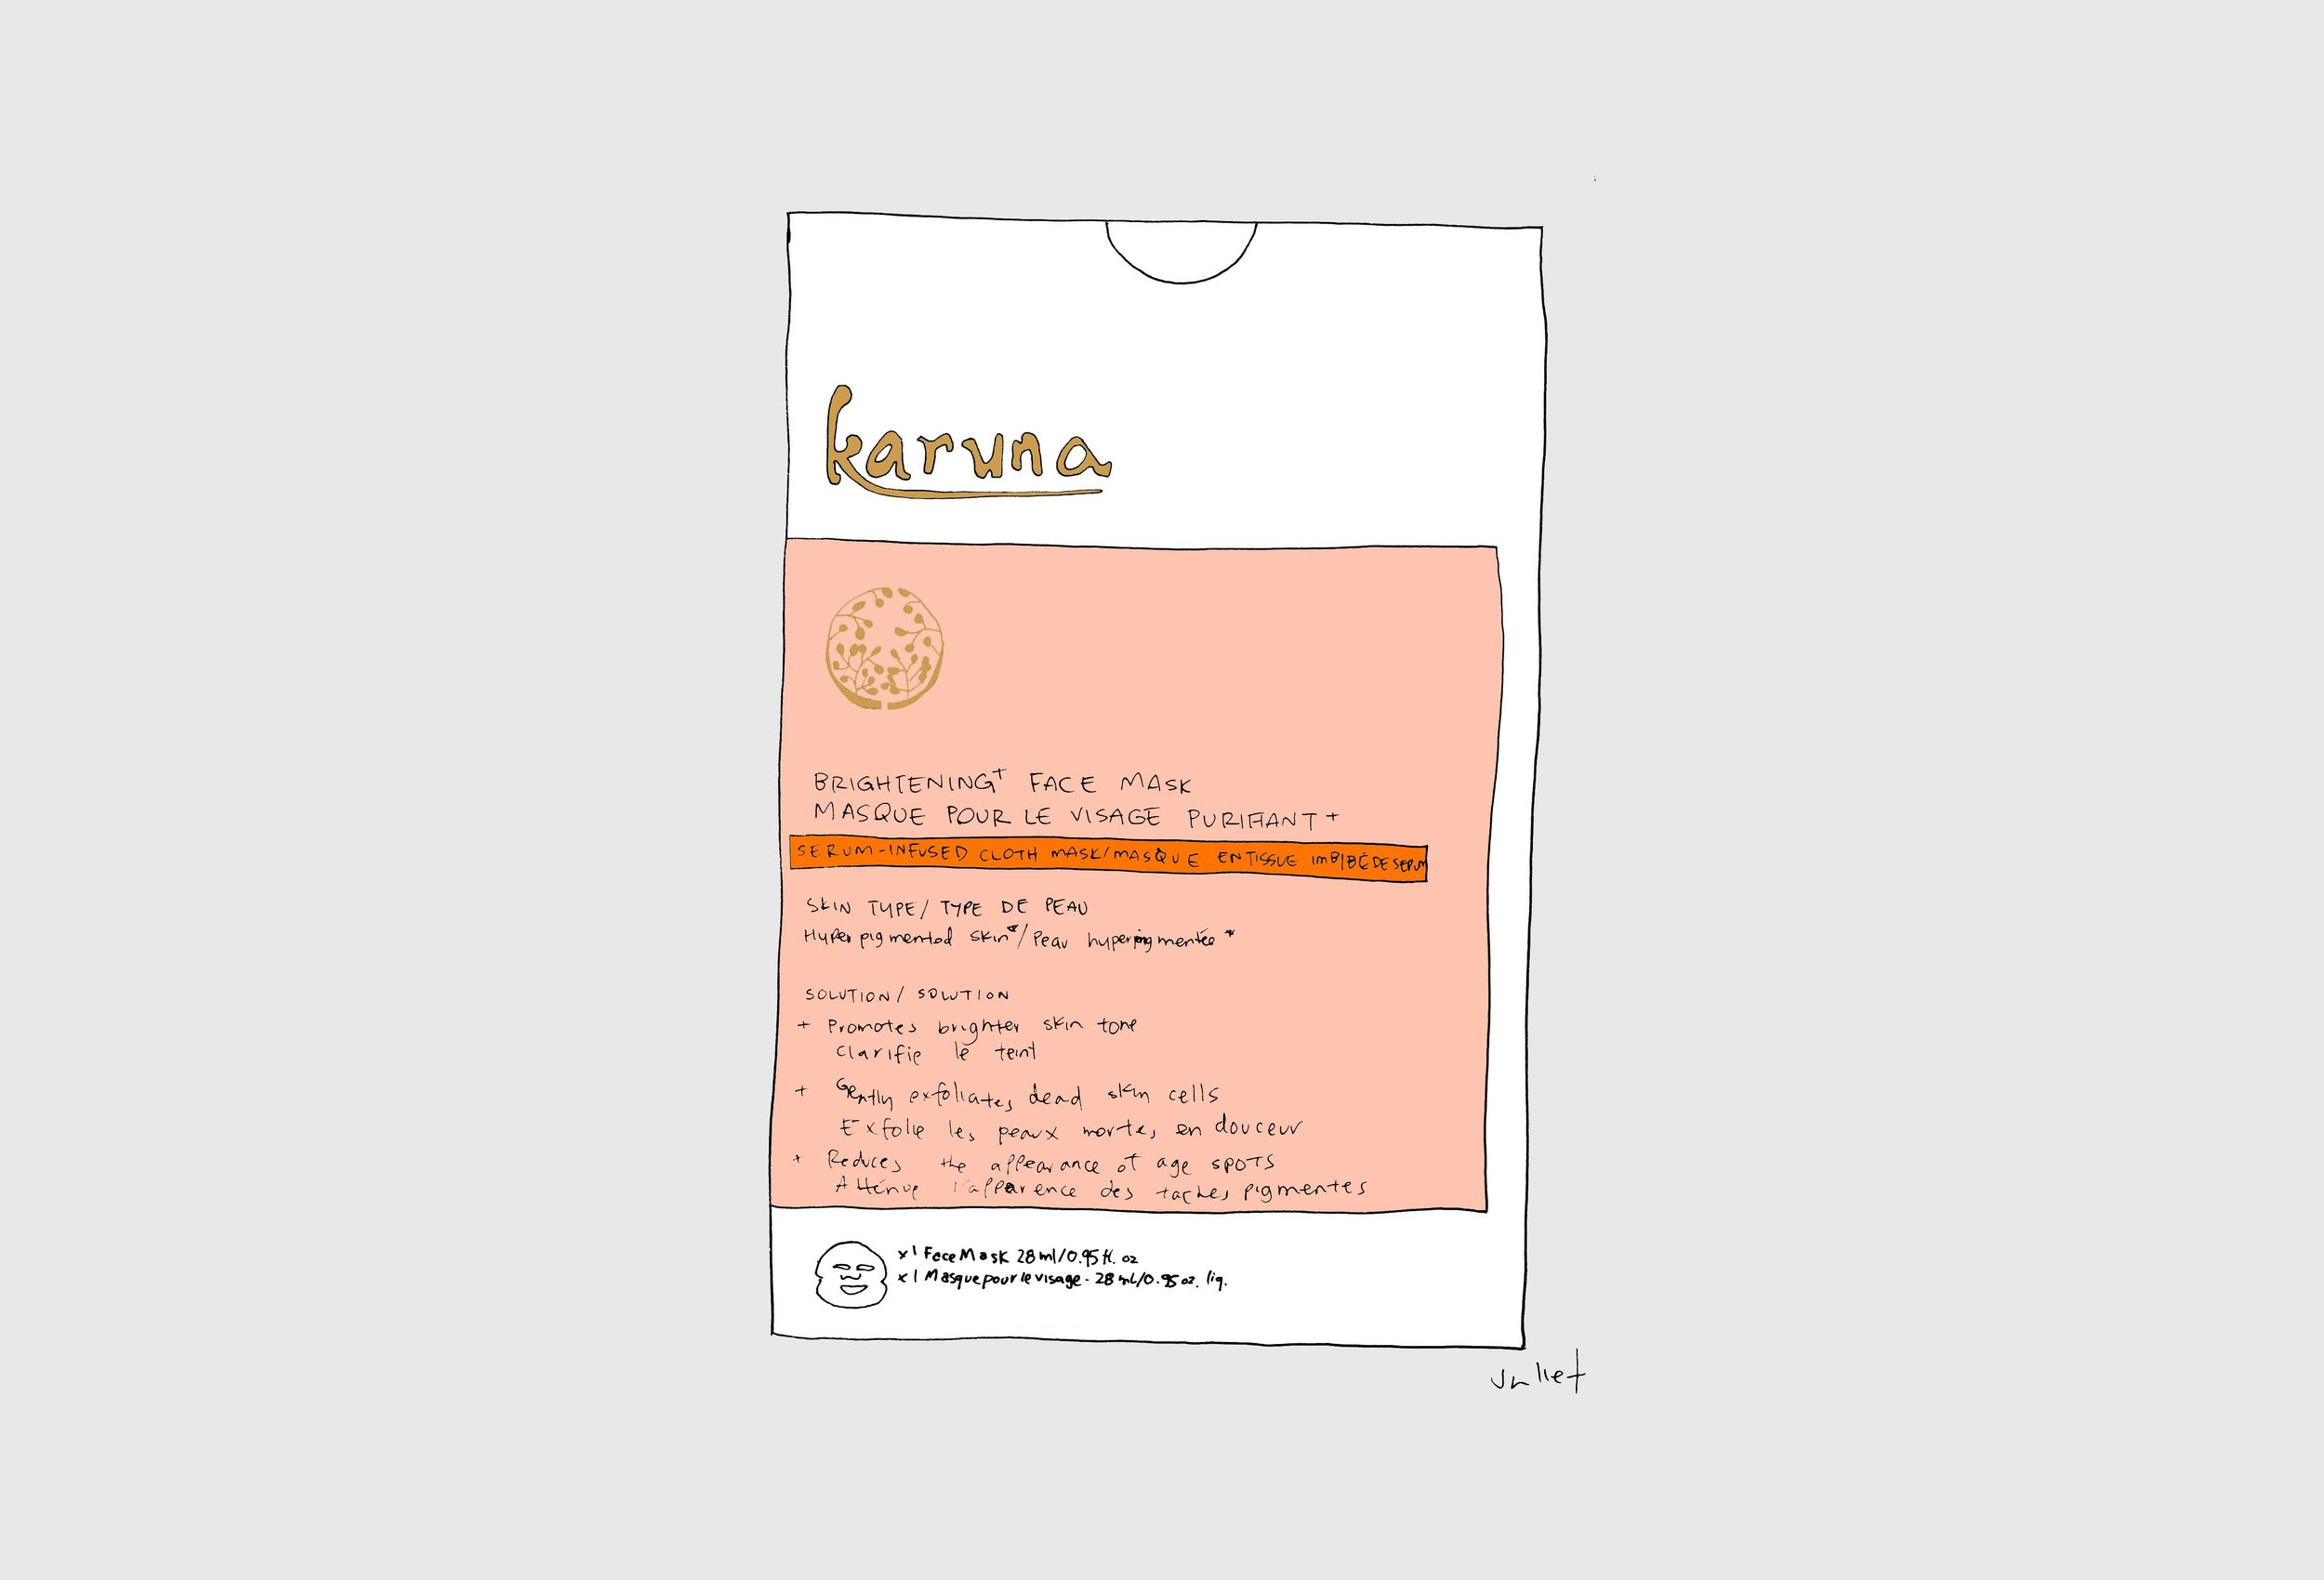 karuna brighening face mask_the juliet report